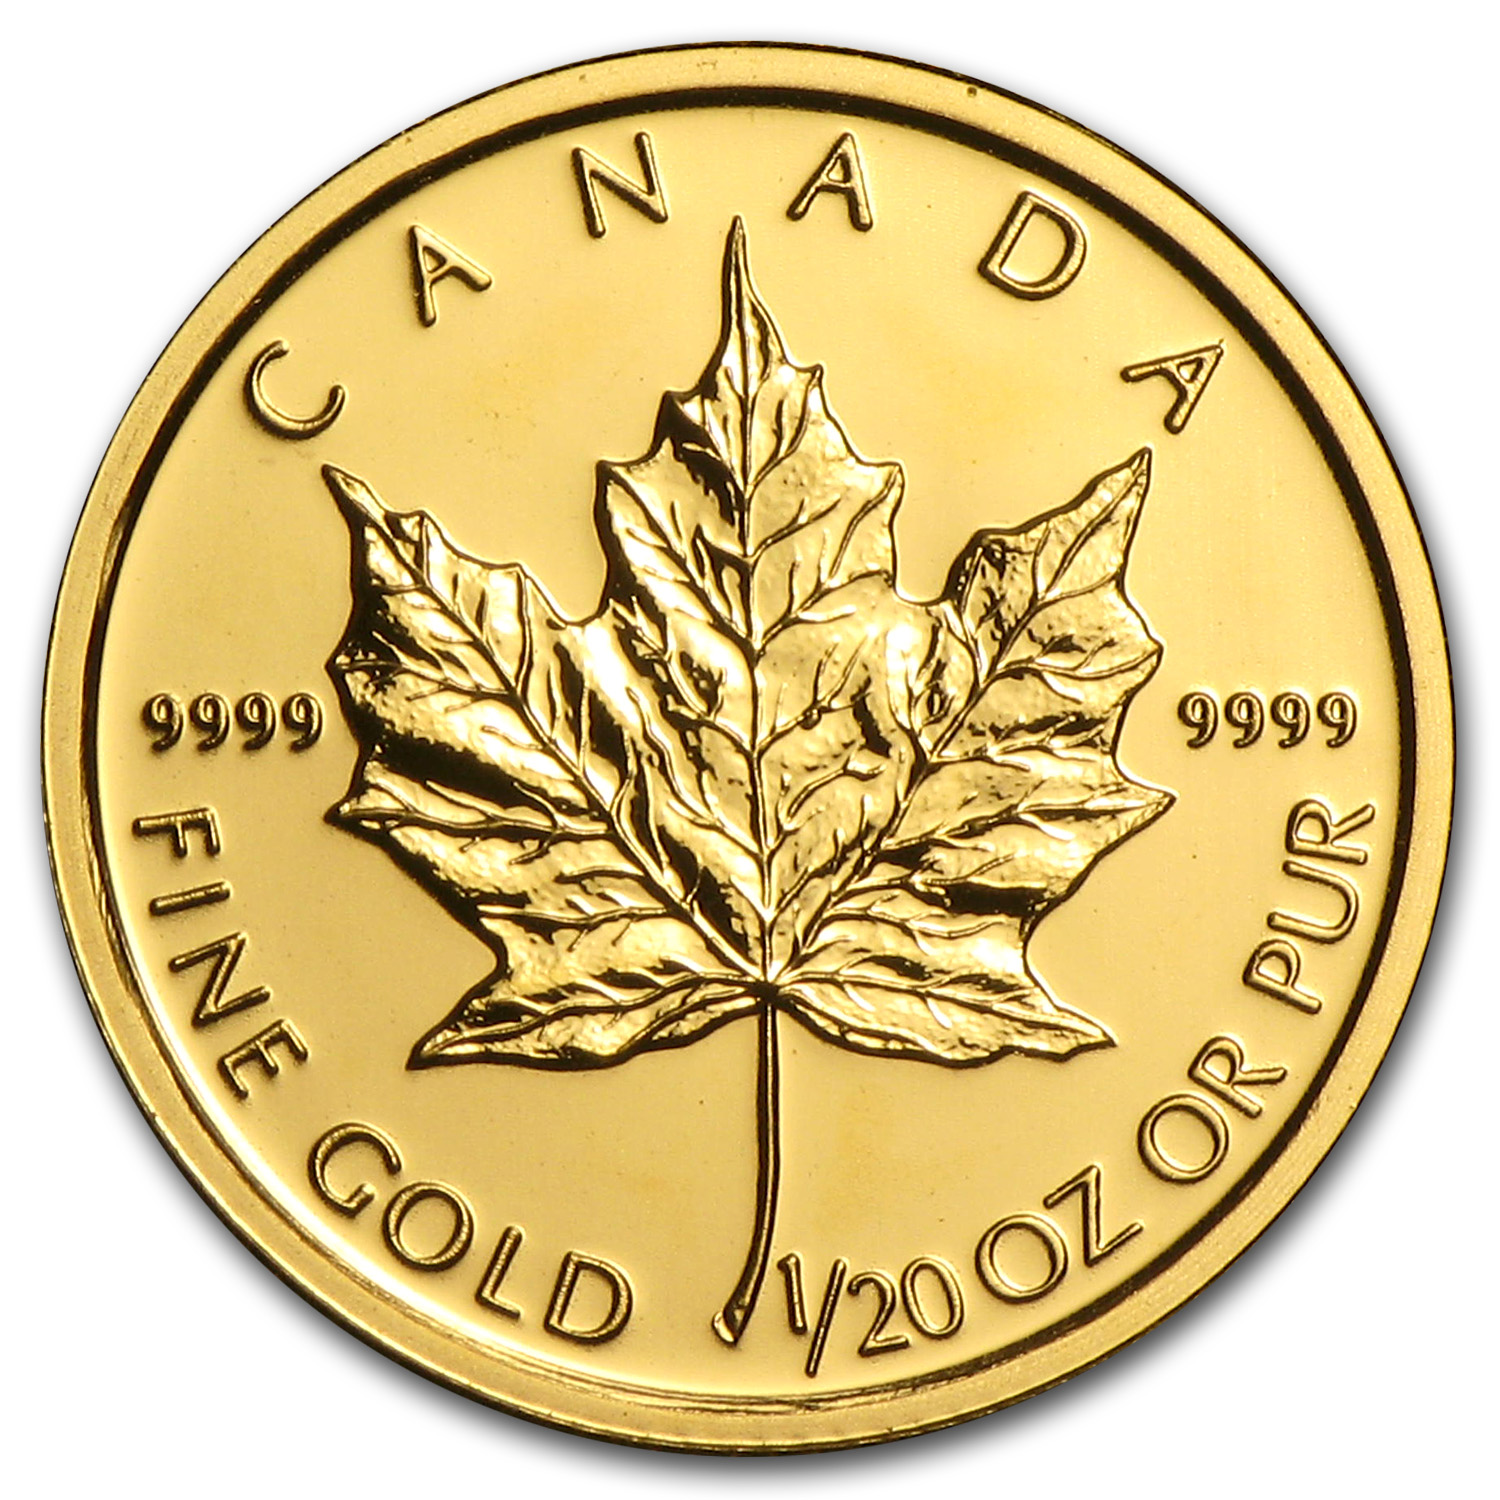 2010 1/20 oz Gold Canadian Maple Leaf